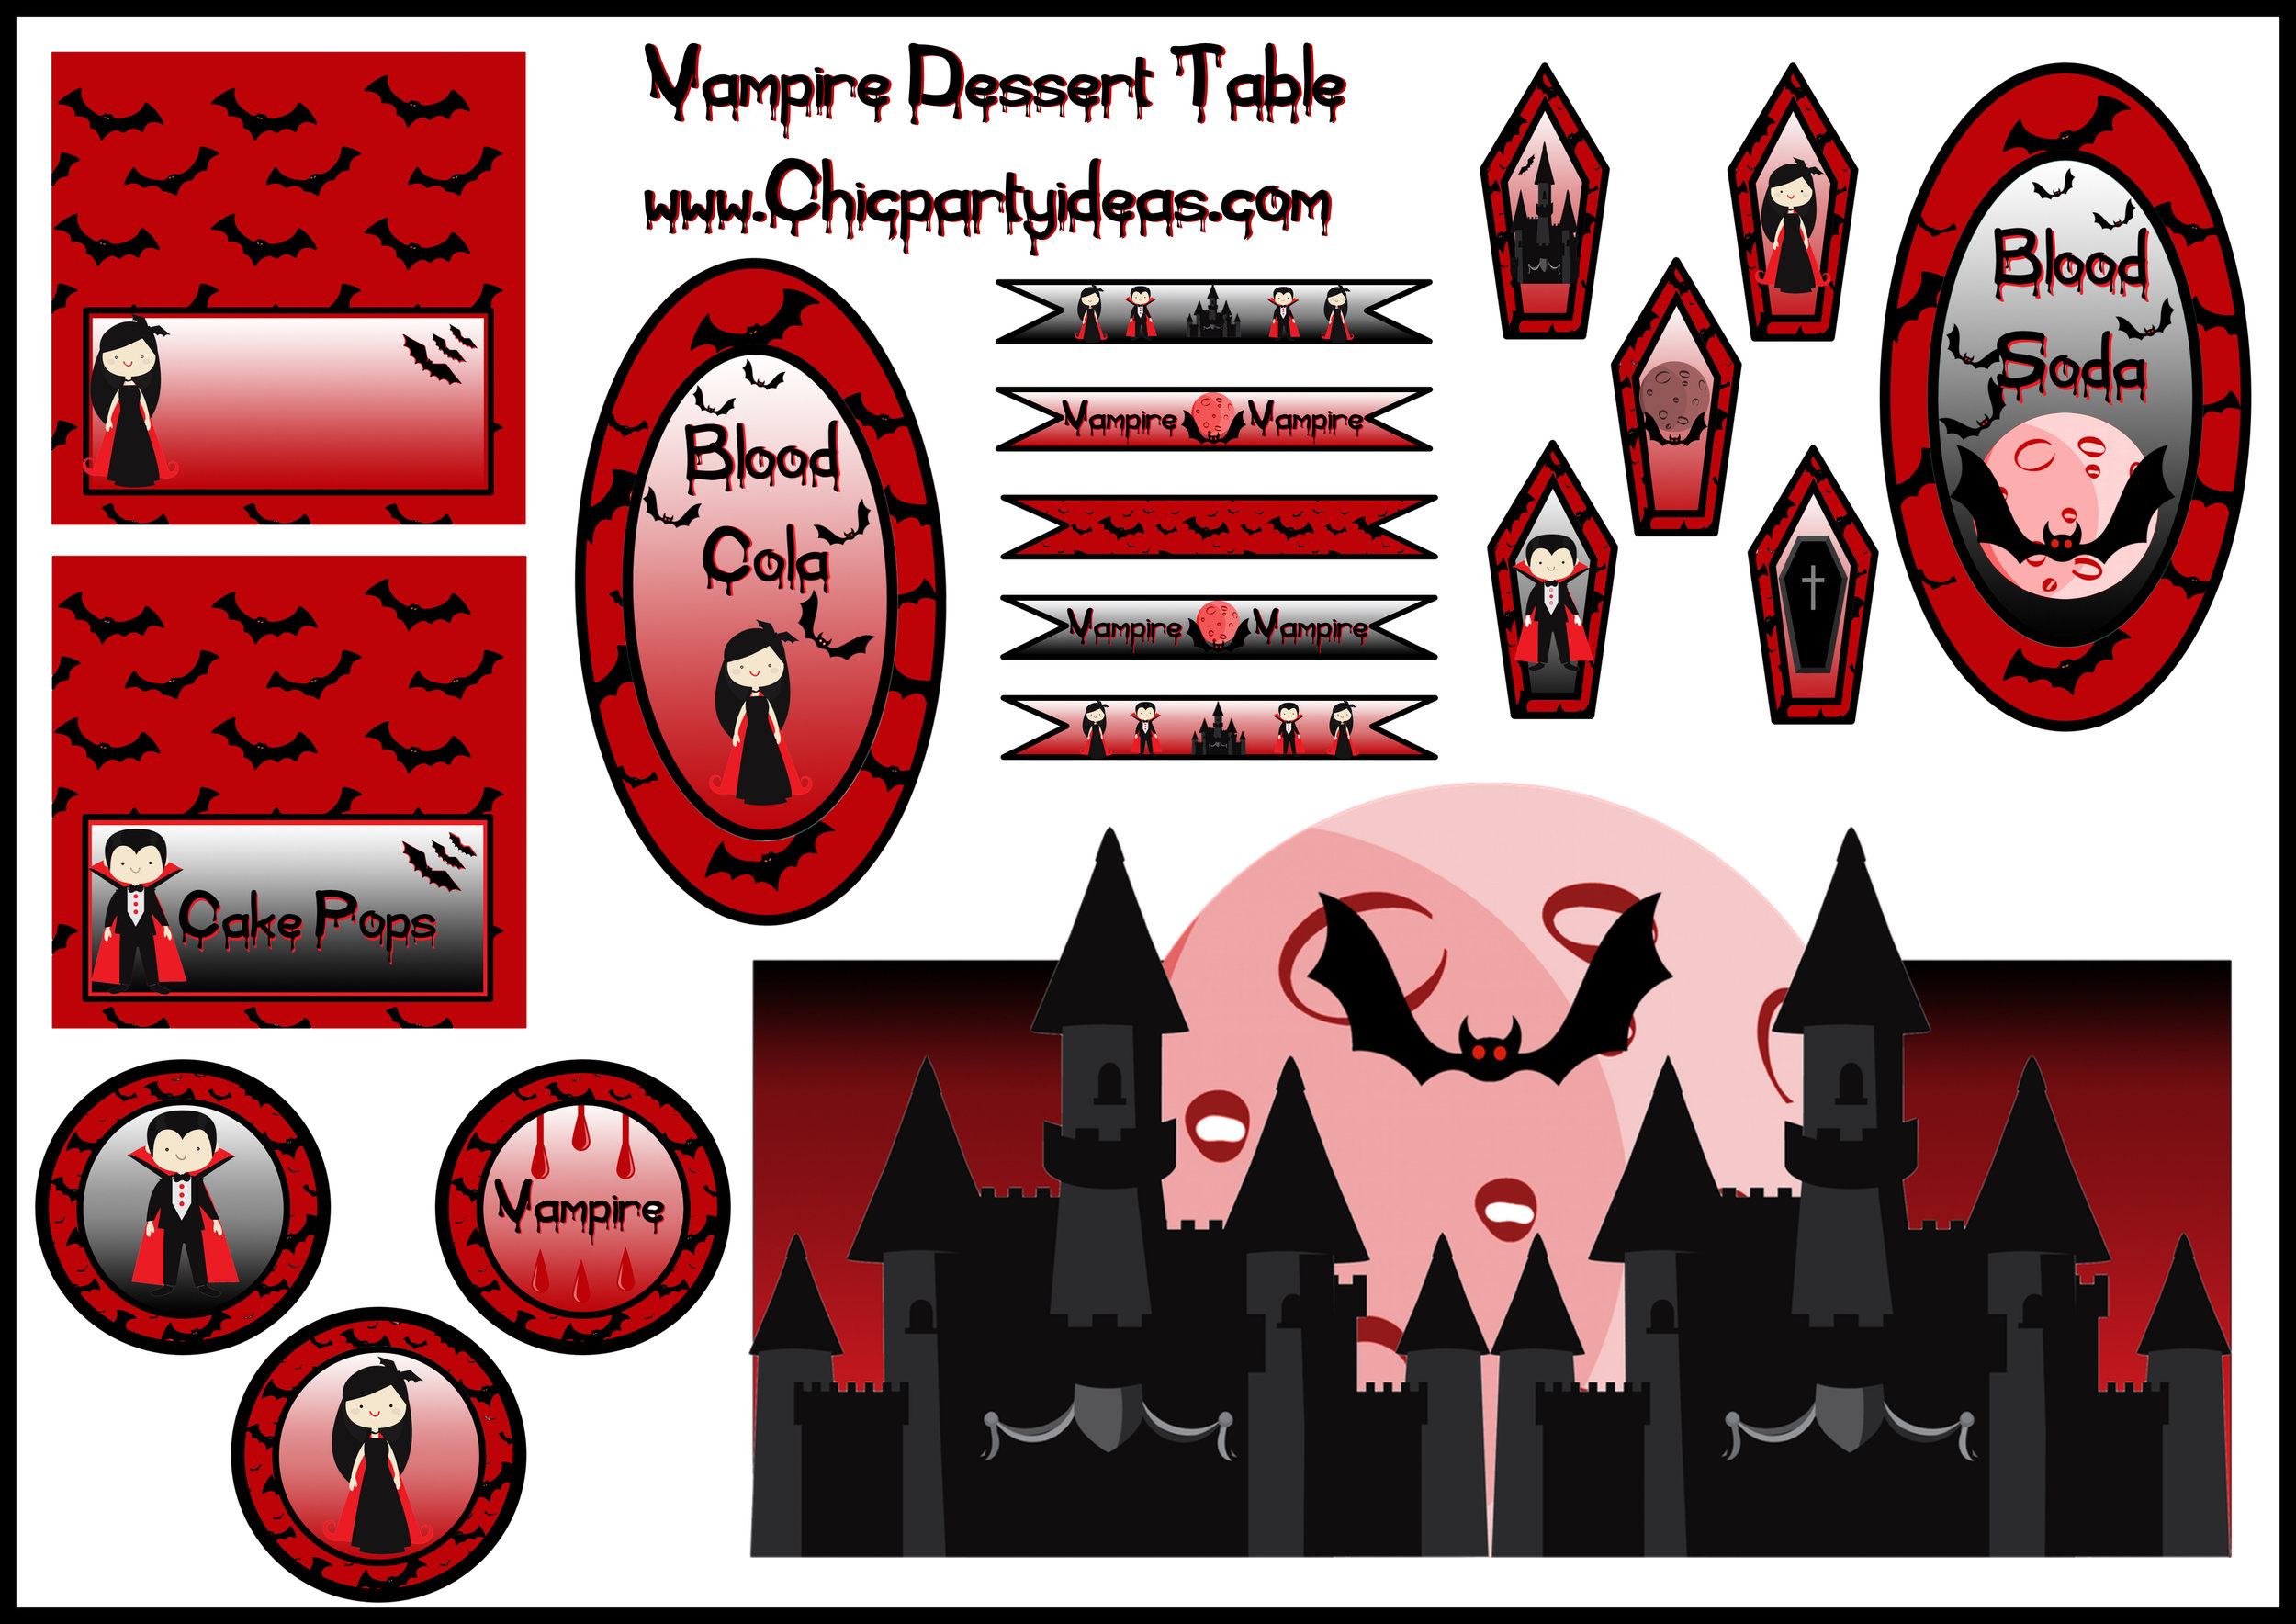 Halloween Vampire party dessert table printable set